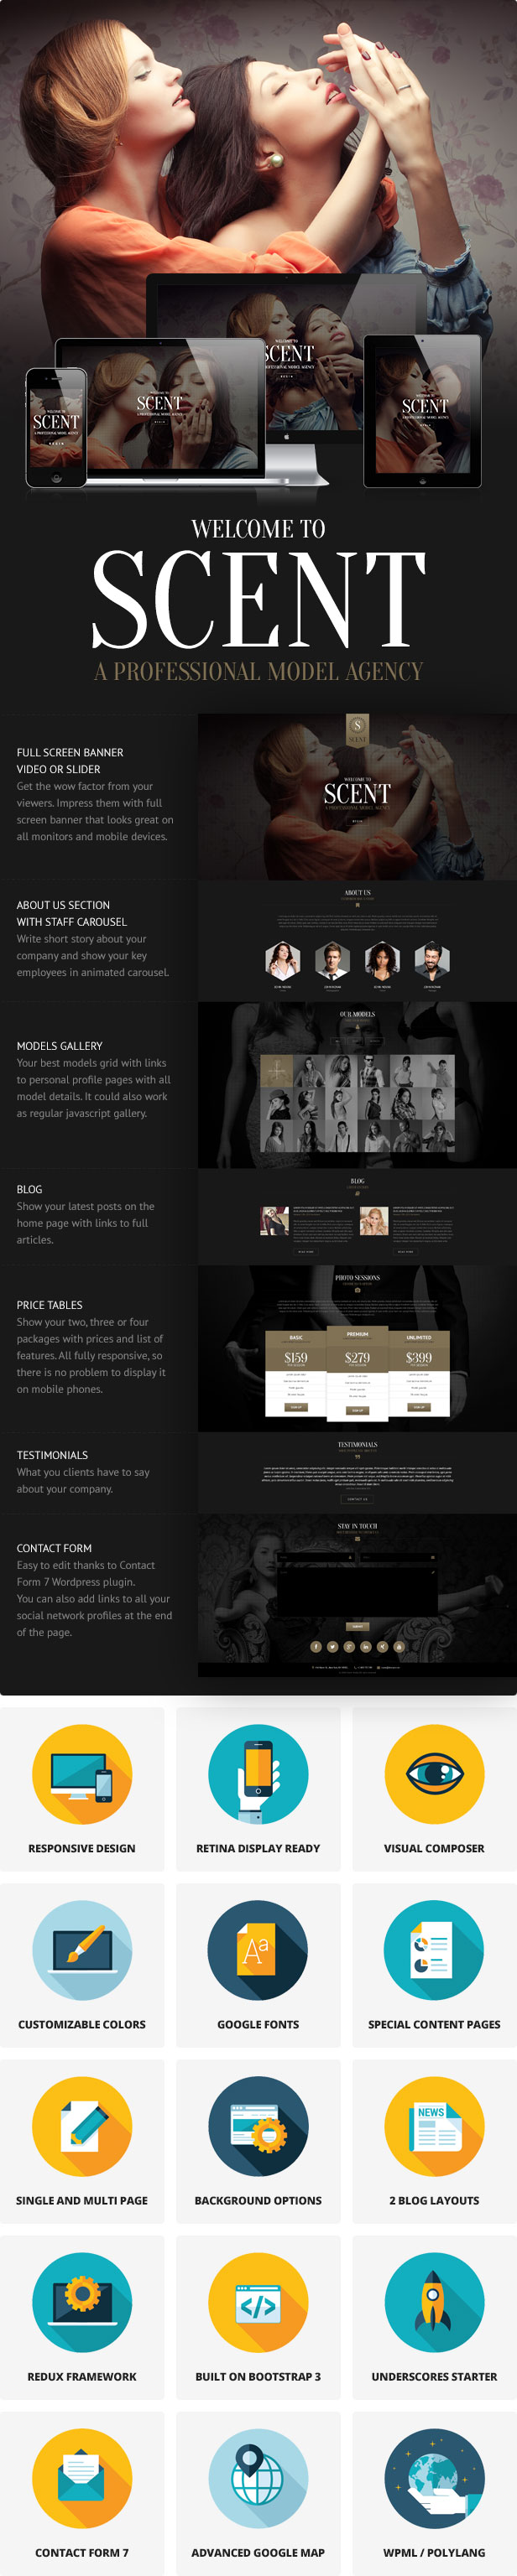 Scent - Model Agency WordPress Theme - 1